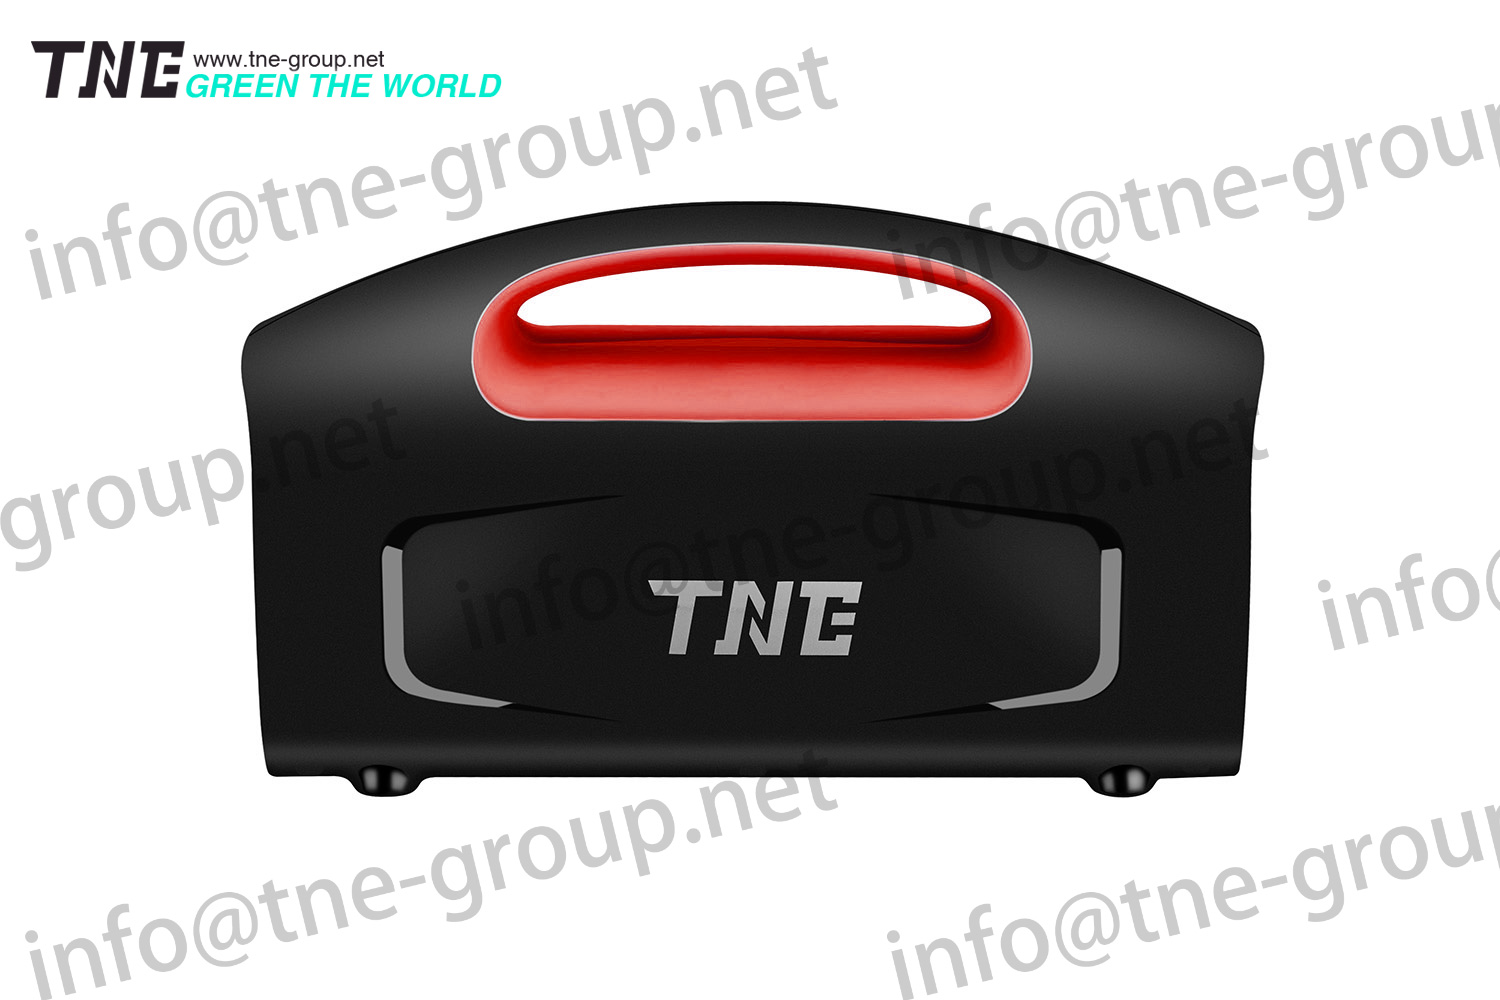 TNE Easy Use Indoor Outdoor Portable Interactive UPS